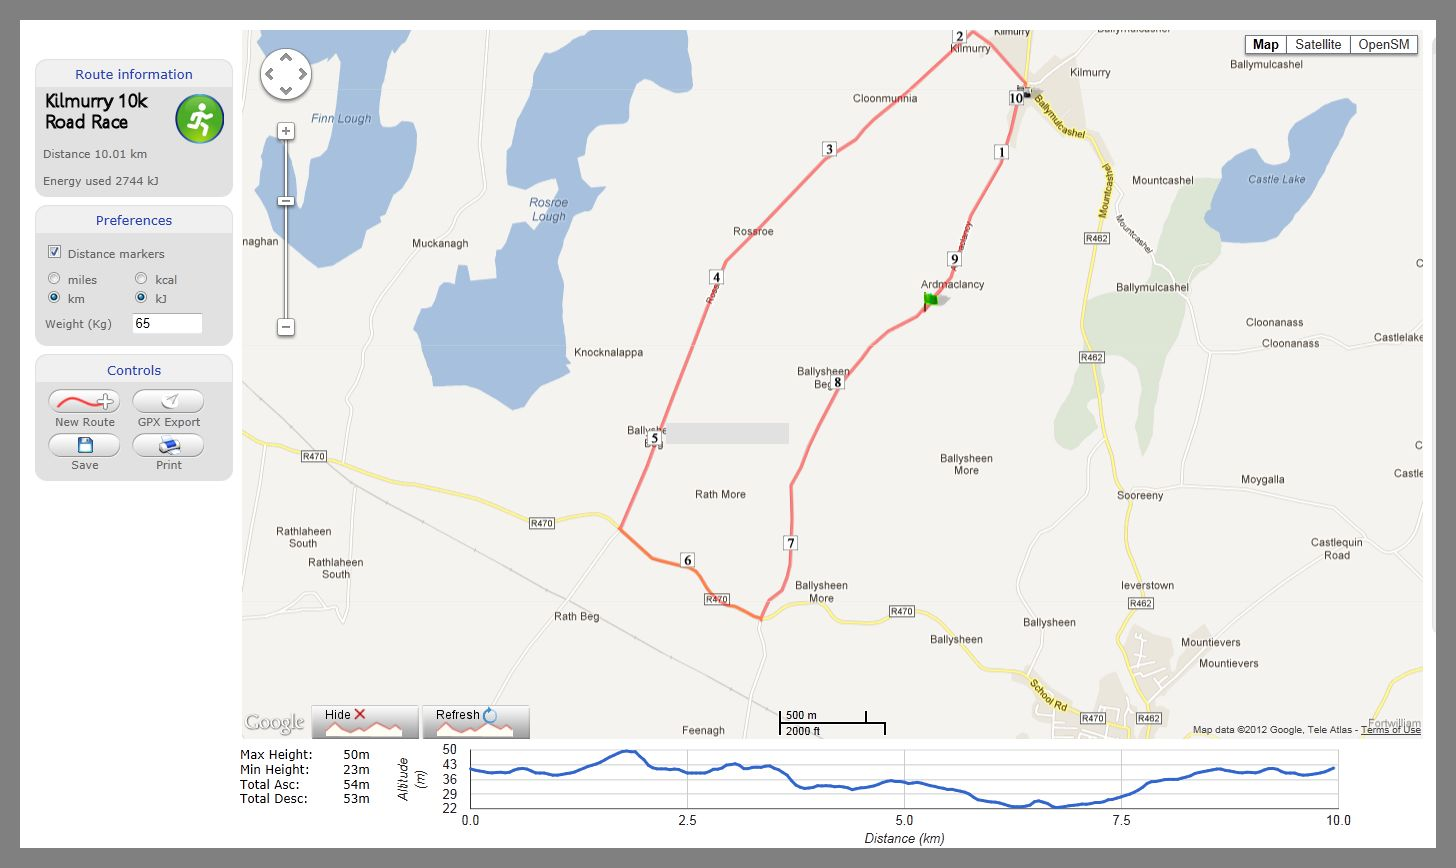 Kilmurry 10k_Route_2013